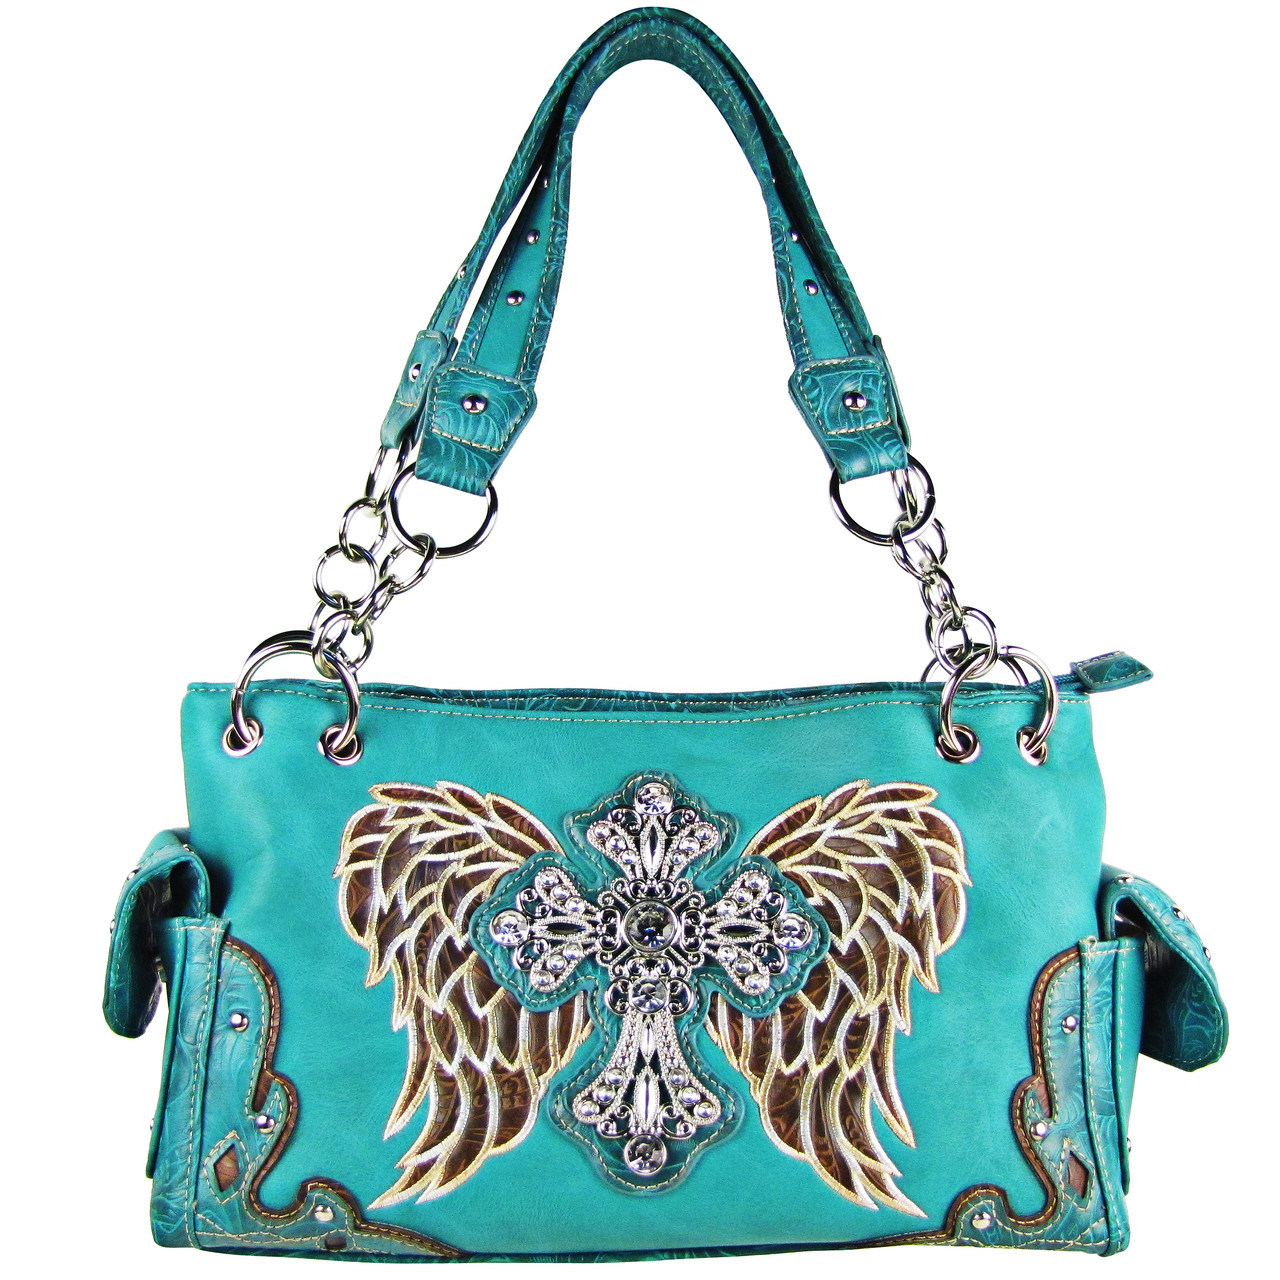 TURQUOISE RHINESTONE CROSS WITH WINGS LOOK SHOULDER HANDBAG HB1-61LCRTRQ